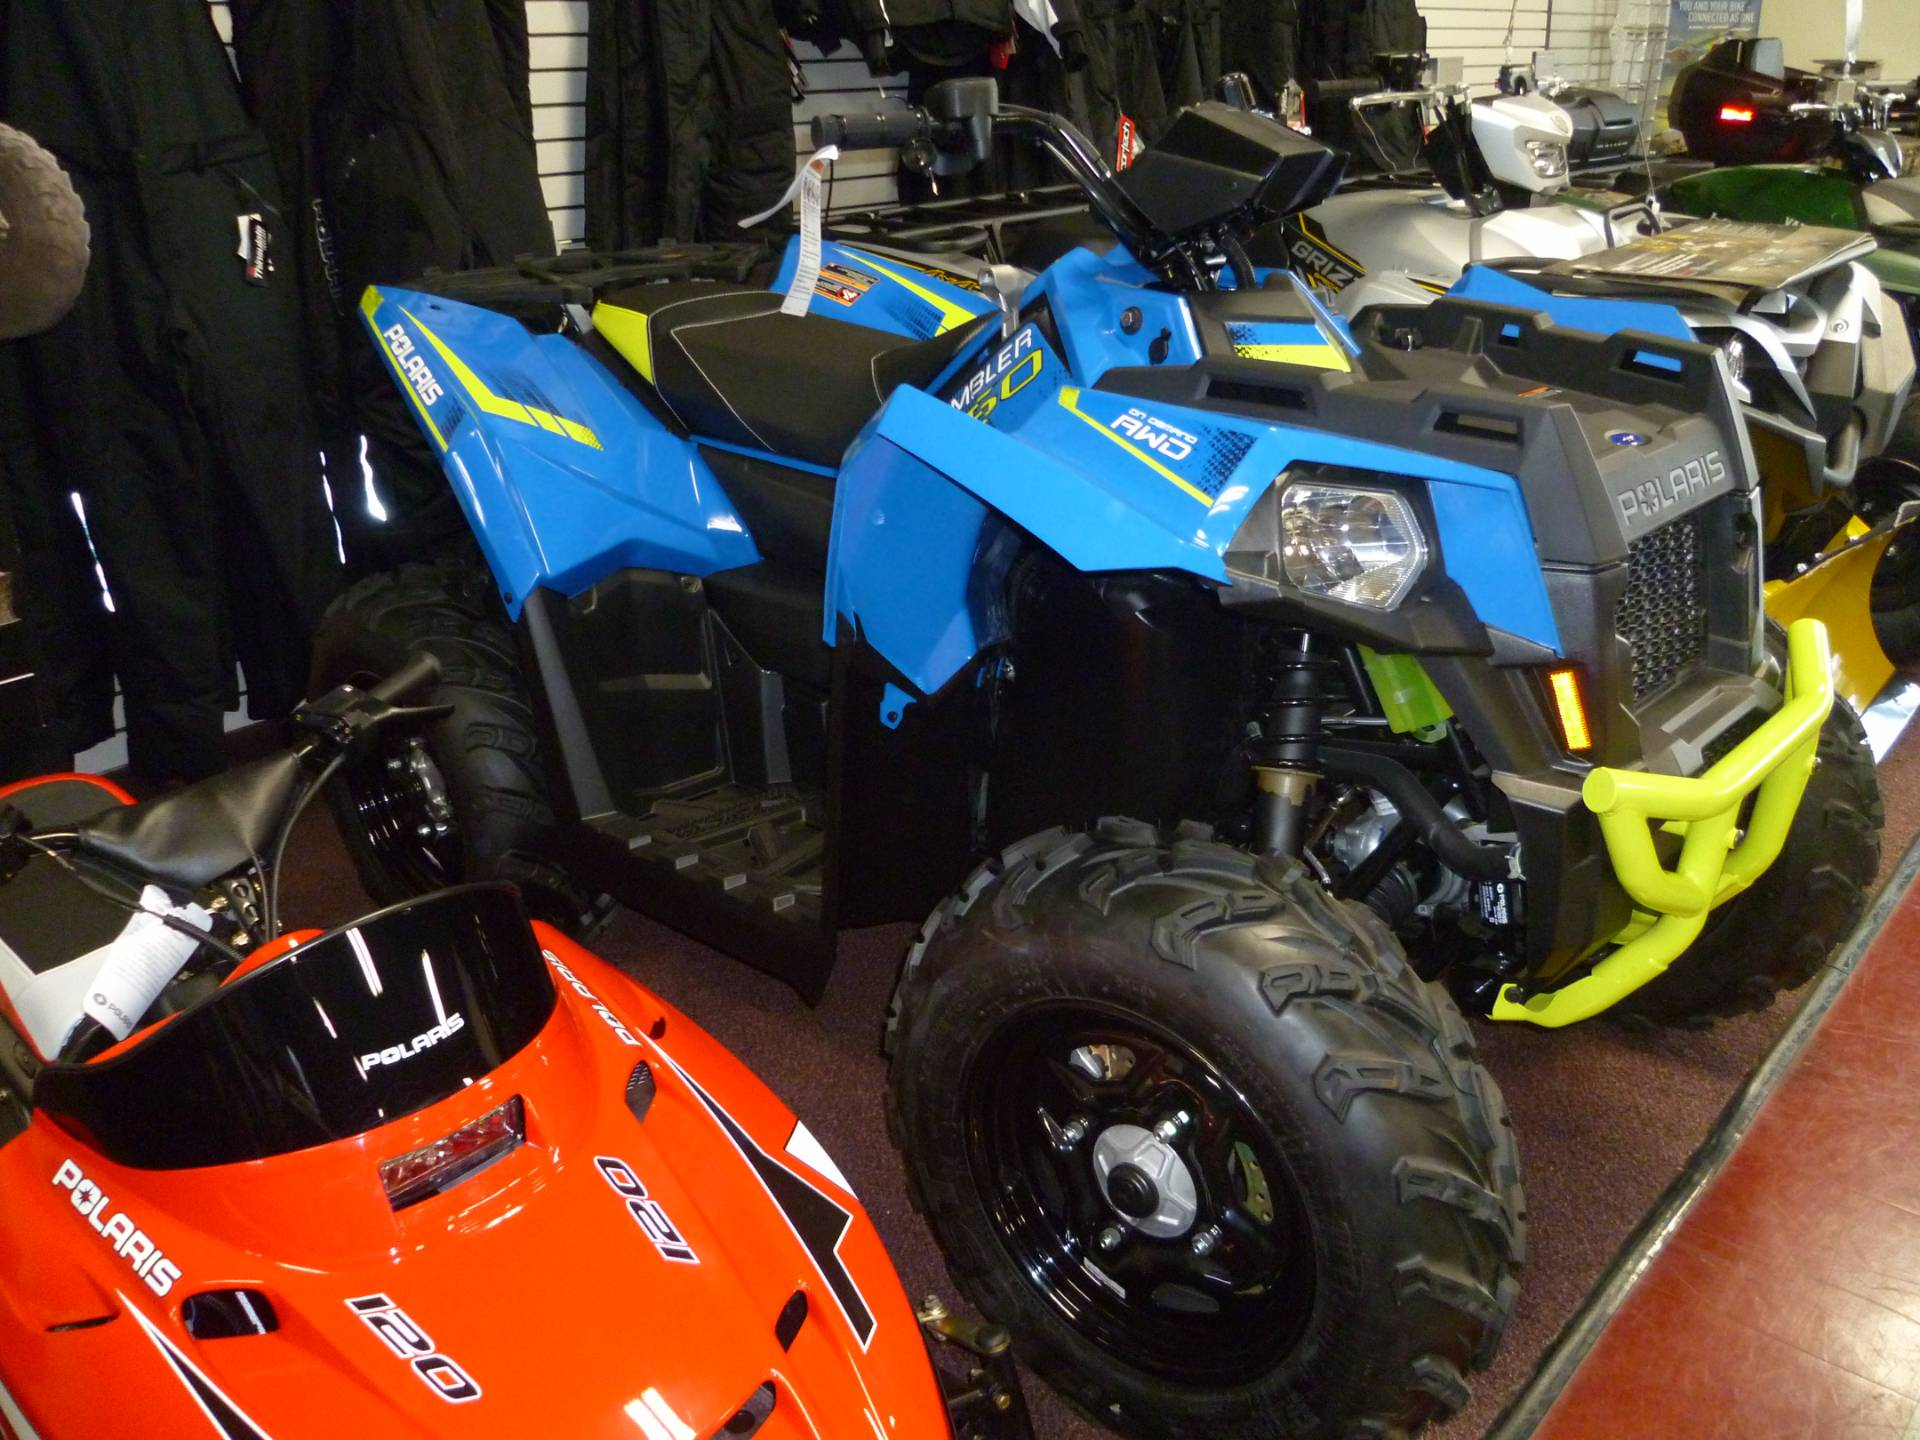 Find product information, MSRP, trims and colors for Polaris Scrambler The ultimate race proven sport quad with a leading 78 HP ProStar Twin EFI Engine.